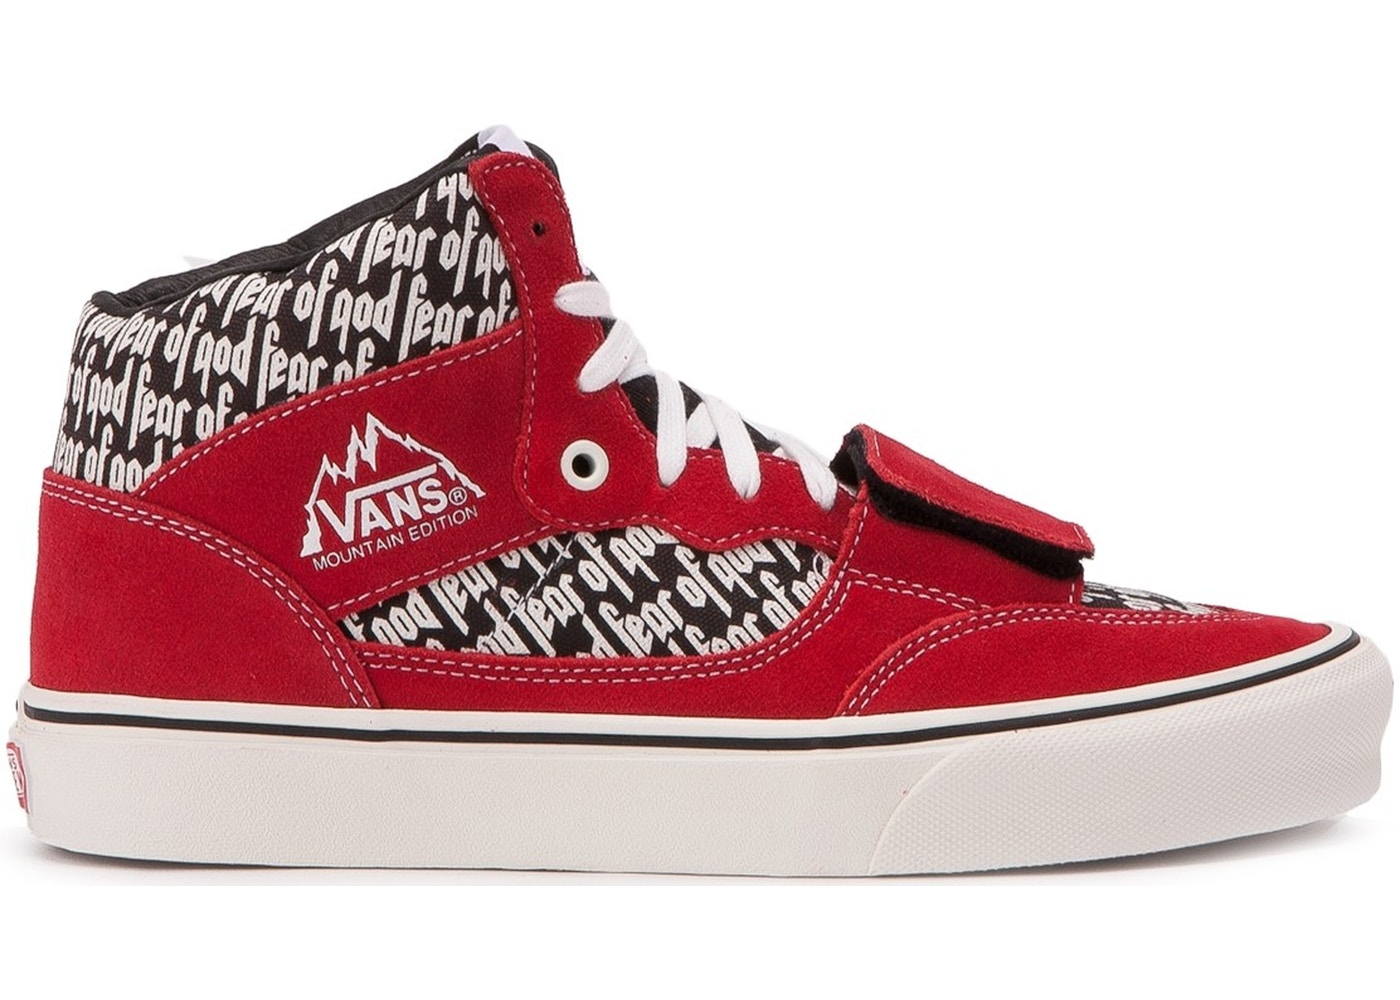 purchase newest select for newest shades of Vans Mountain Edition Fear of God Red